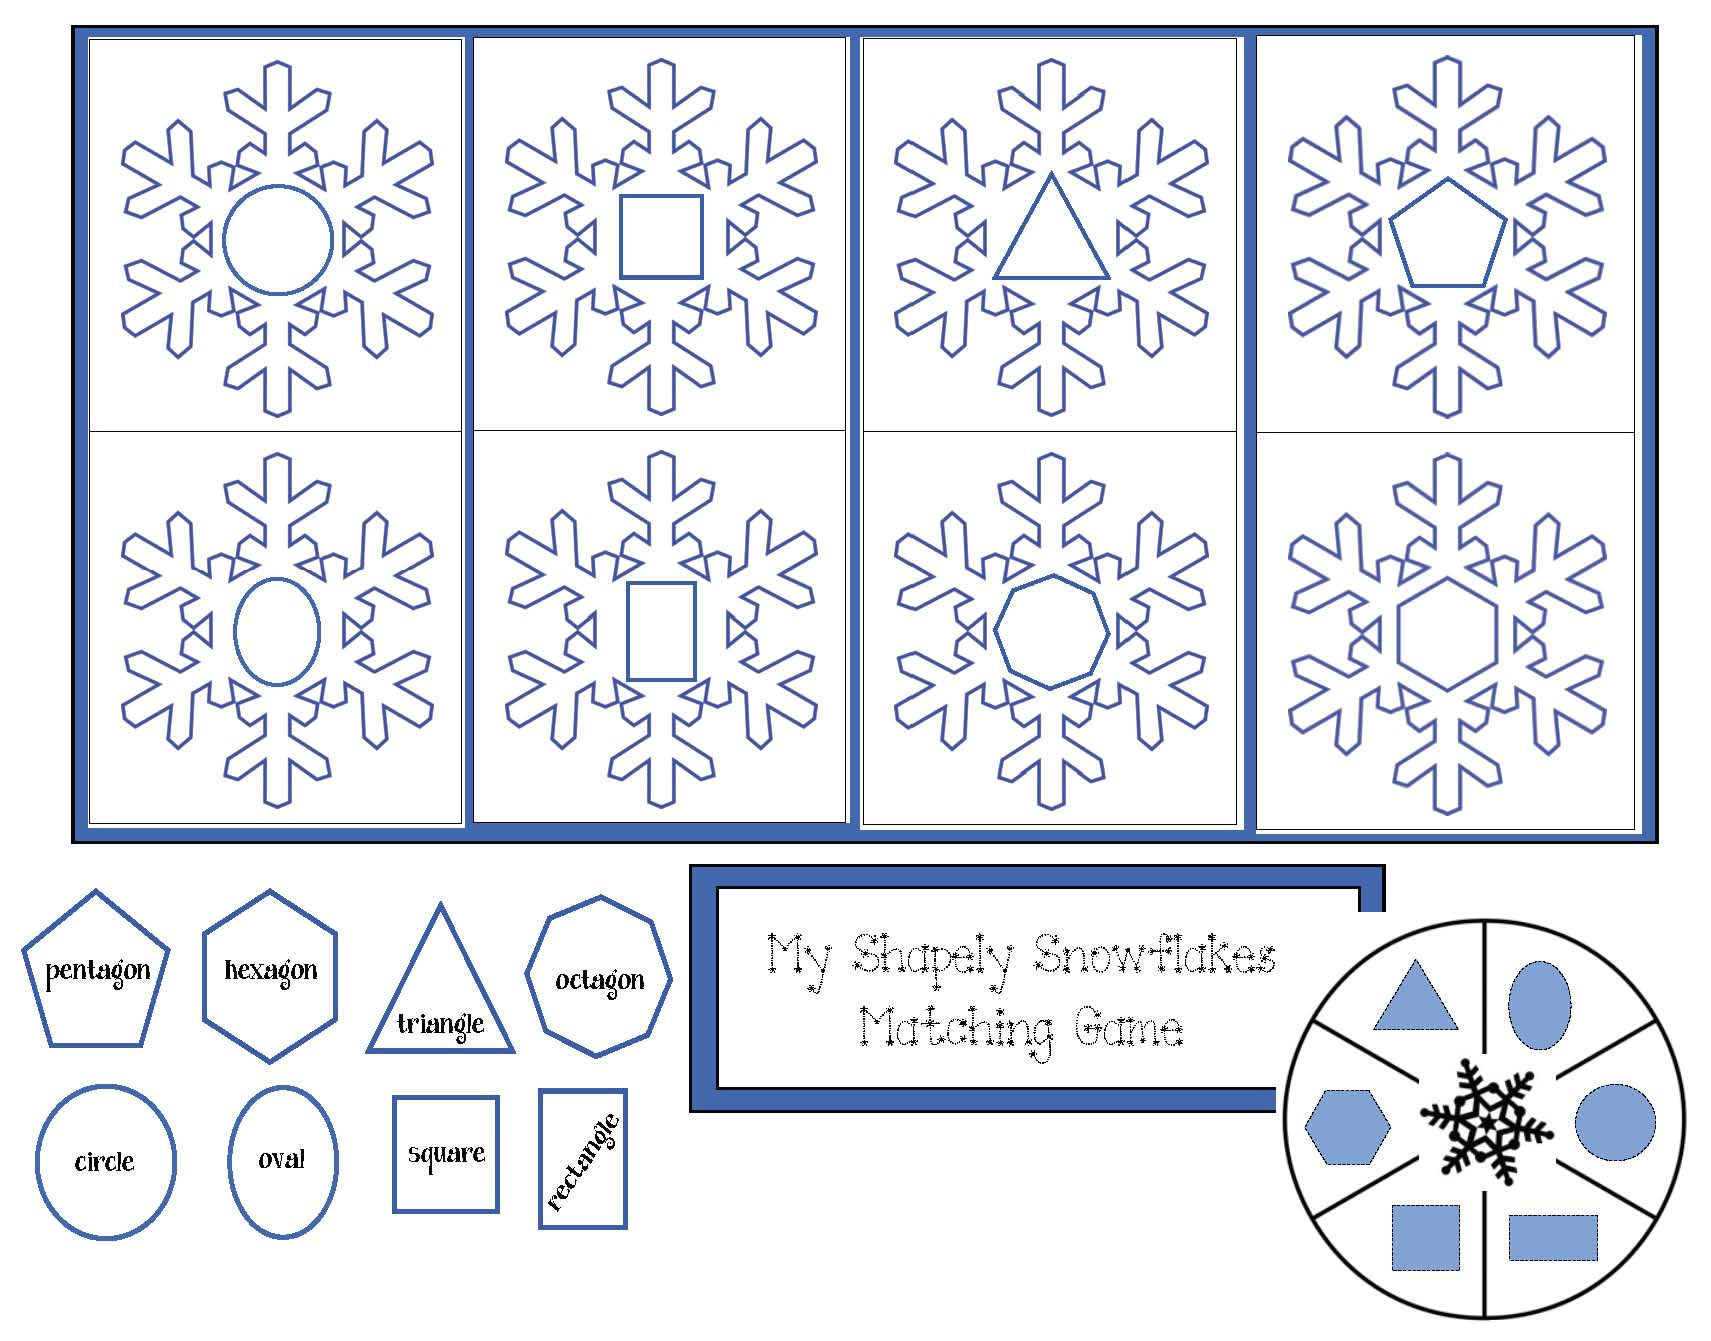 shape activities, snowflake activities, christmas gifts for students, christmas gifts for students to make, shape flashcards, shape games, shape activities, shape crafts, snowflake crafts, snowman activities, snowman crafts, snowman poems, common core snowflakes, common core snowment, snowman tea light pin, snowman tea light magnet, snowflake alphabet cards, free alphabet cards, snowman alphabet cards, winter alphabet cards, winter writing prompts, Christmas games, winter games, winter math games, learning name activities, snowman crafts